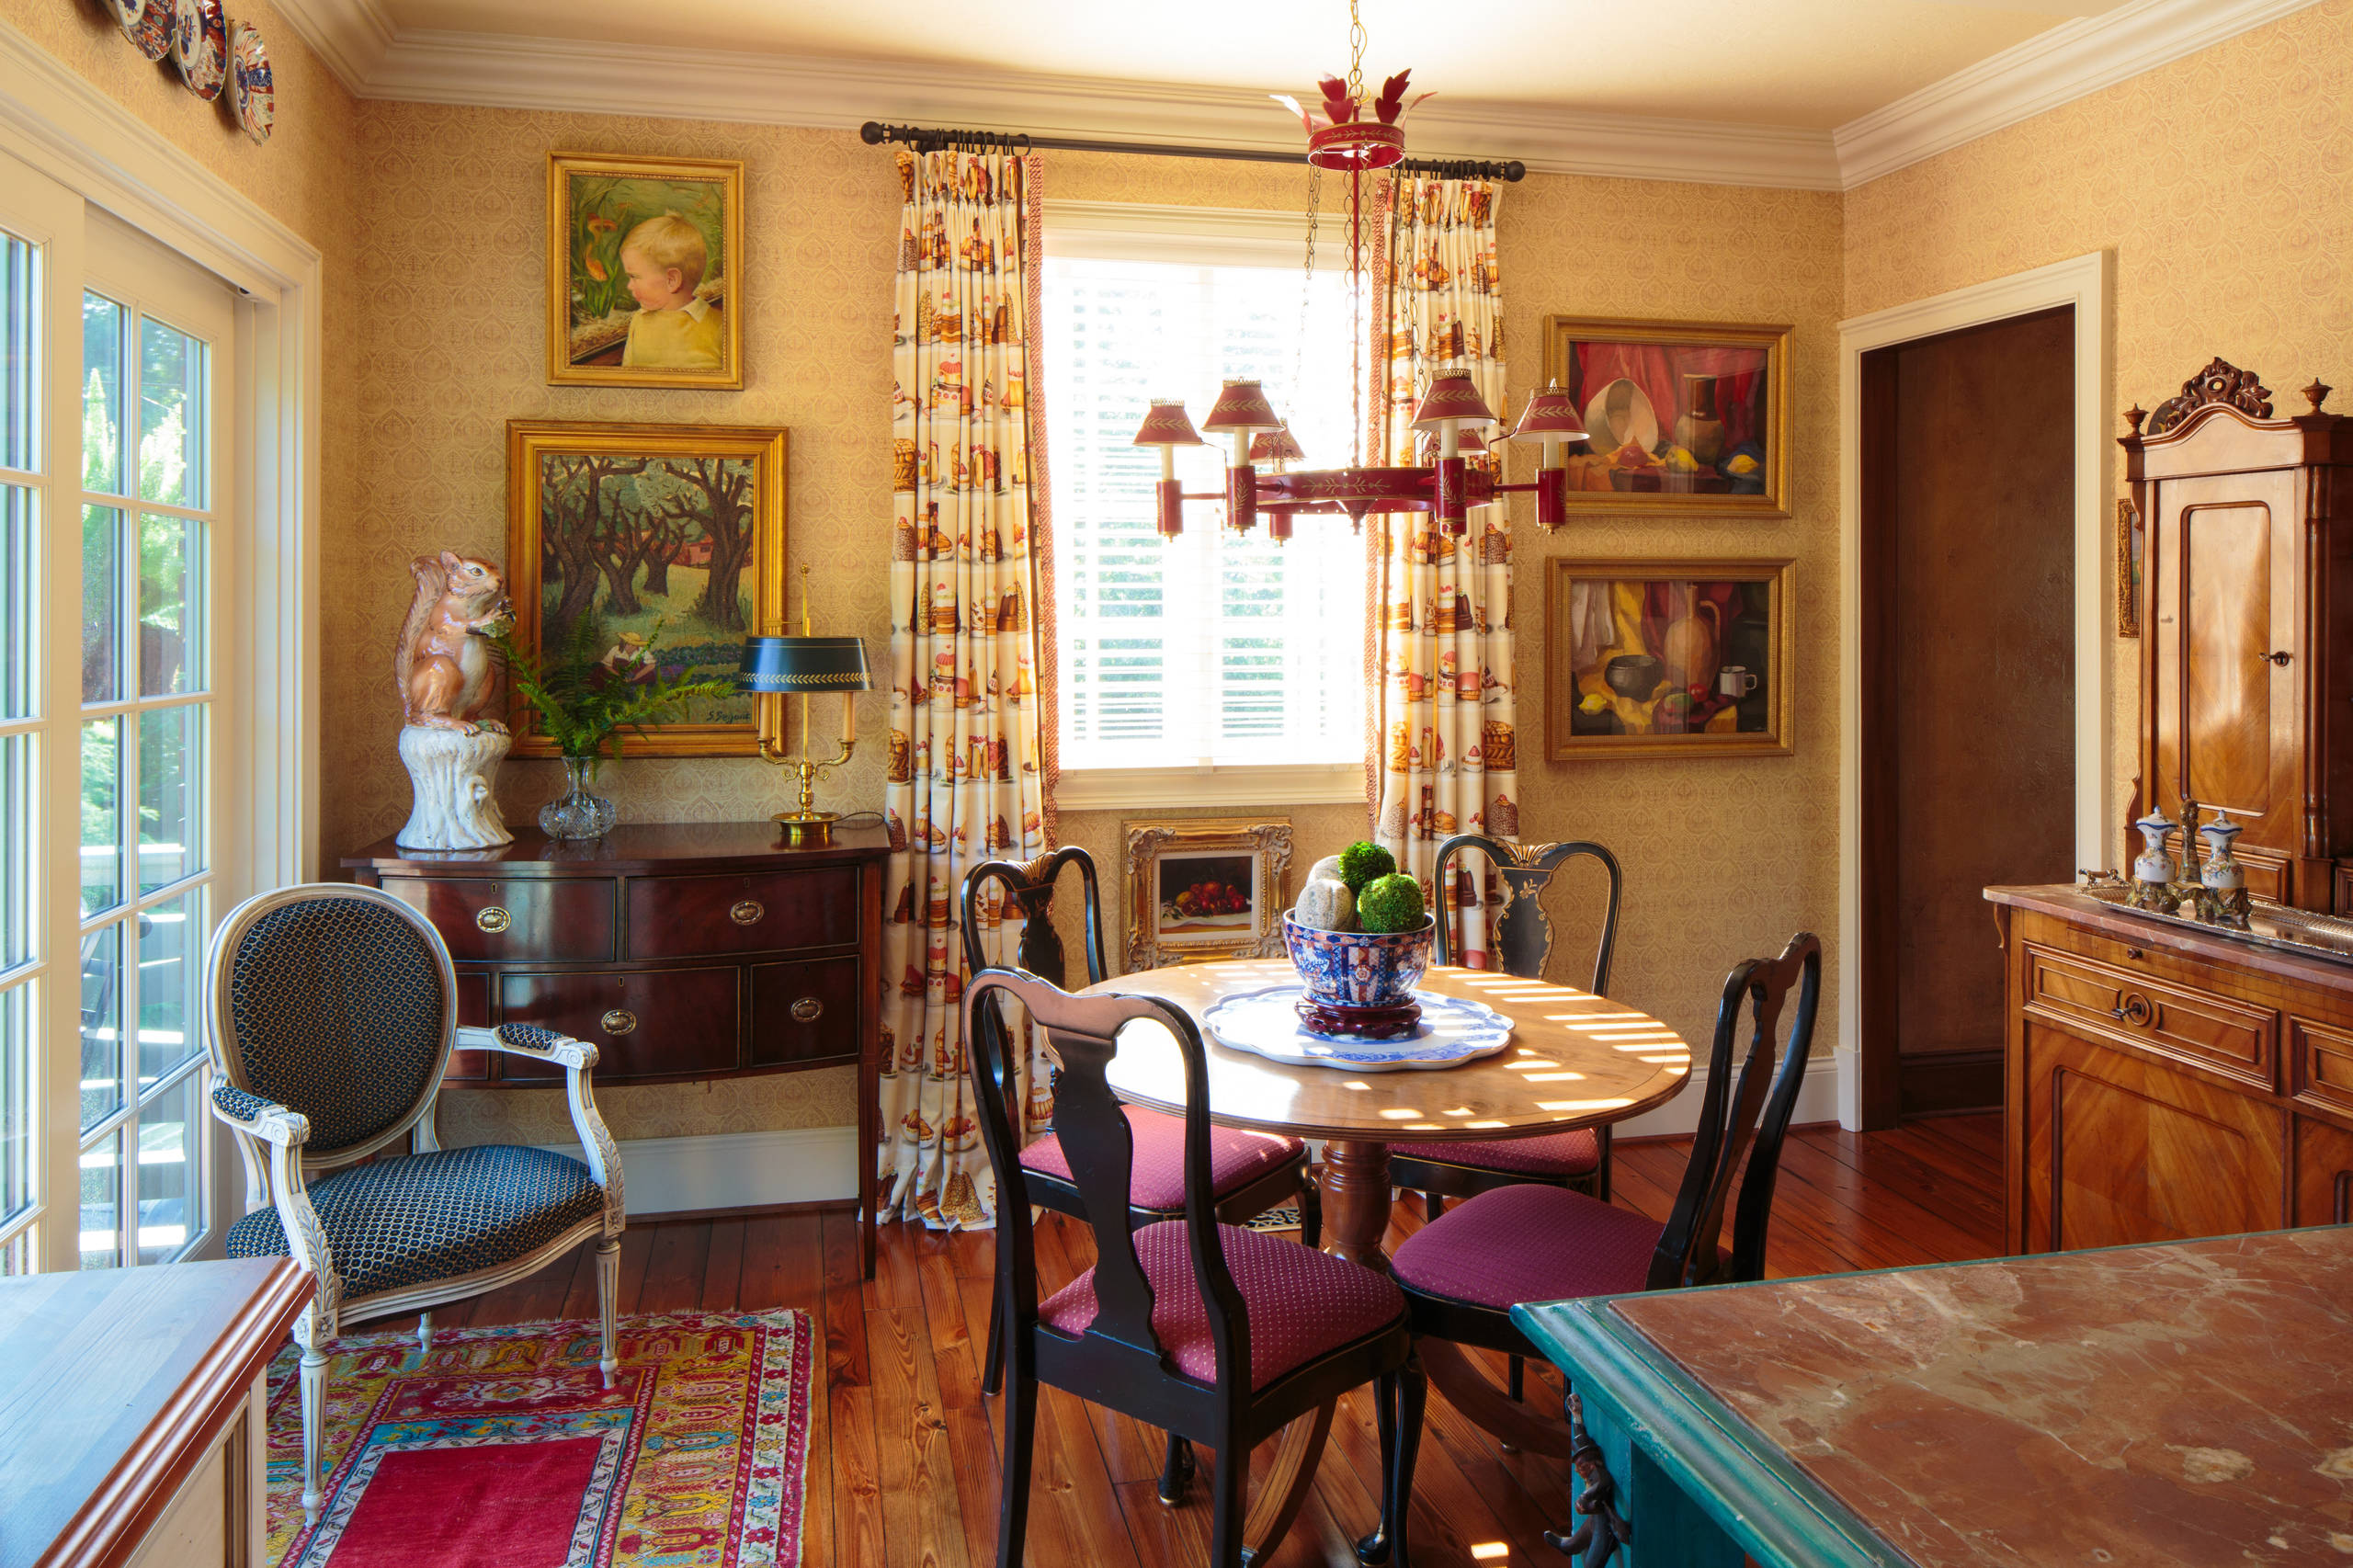 Queen Anne Dining Room Ideas Photos, Queen Anne Style Dining Room Setup